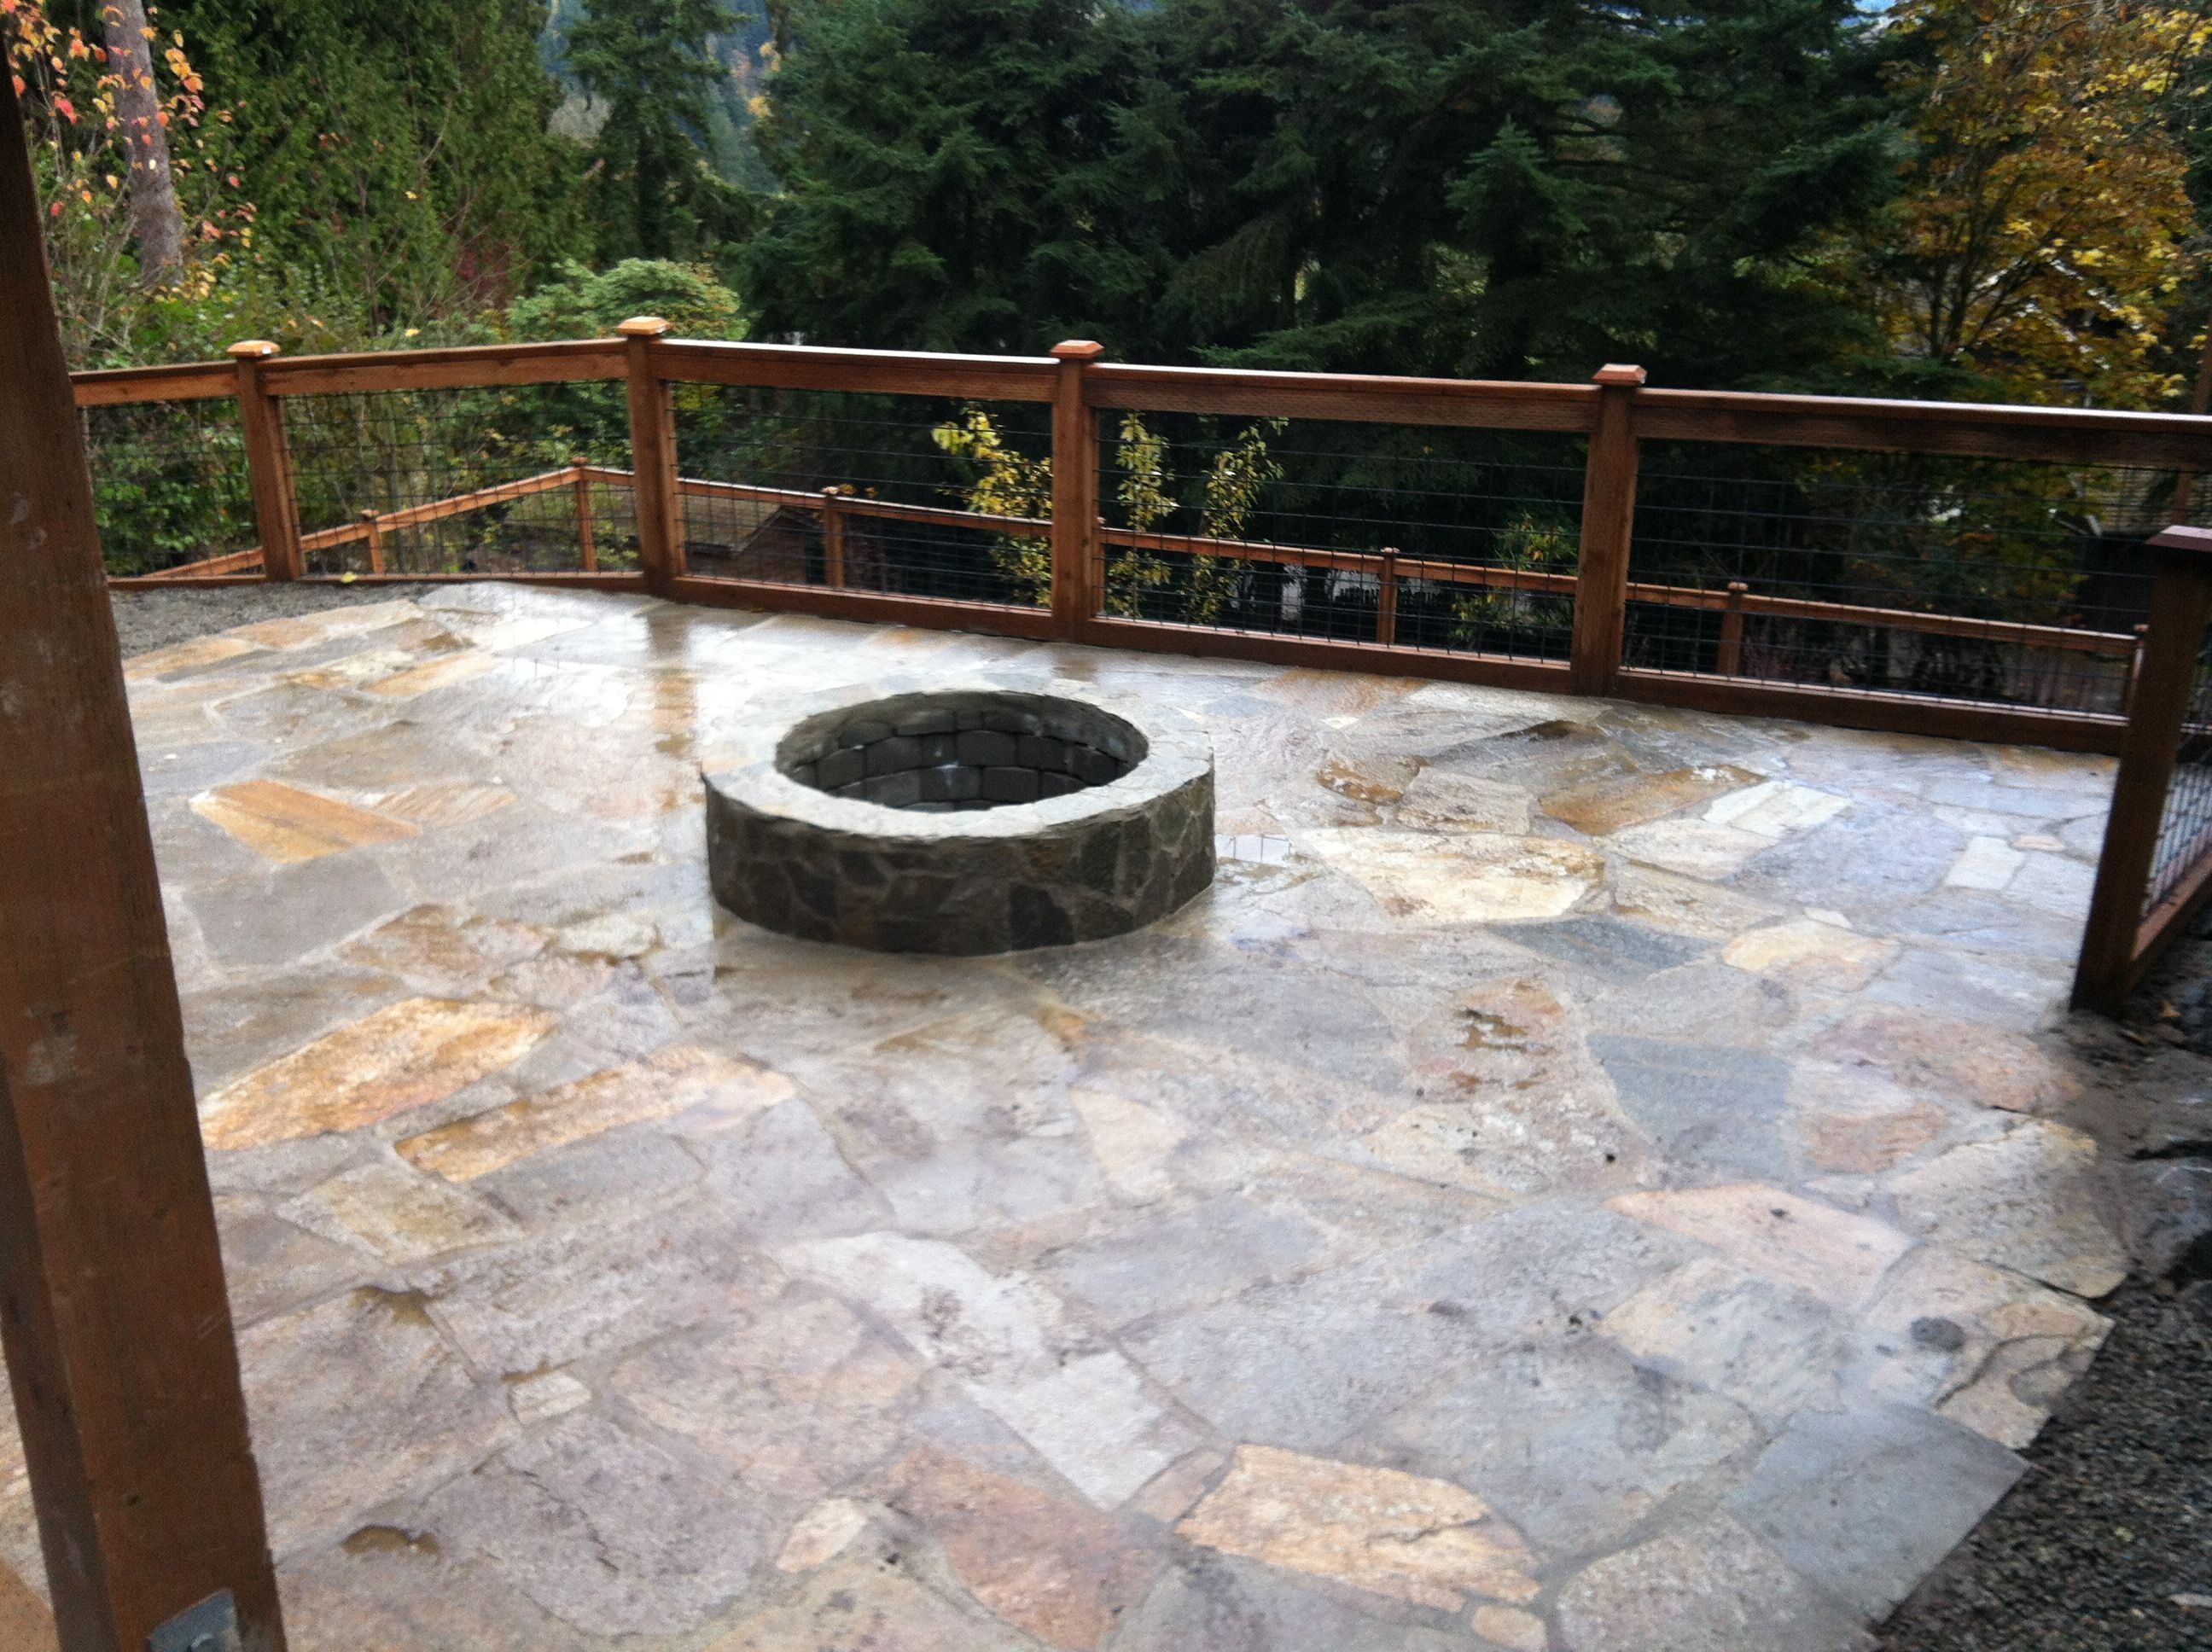 landscape design Flagstone Patio and Fire pit. For a quote contact SMS  Superiormaintenancesolutions.com